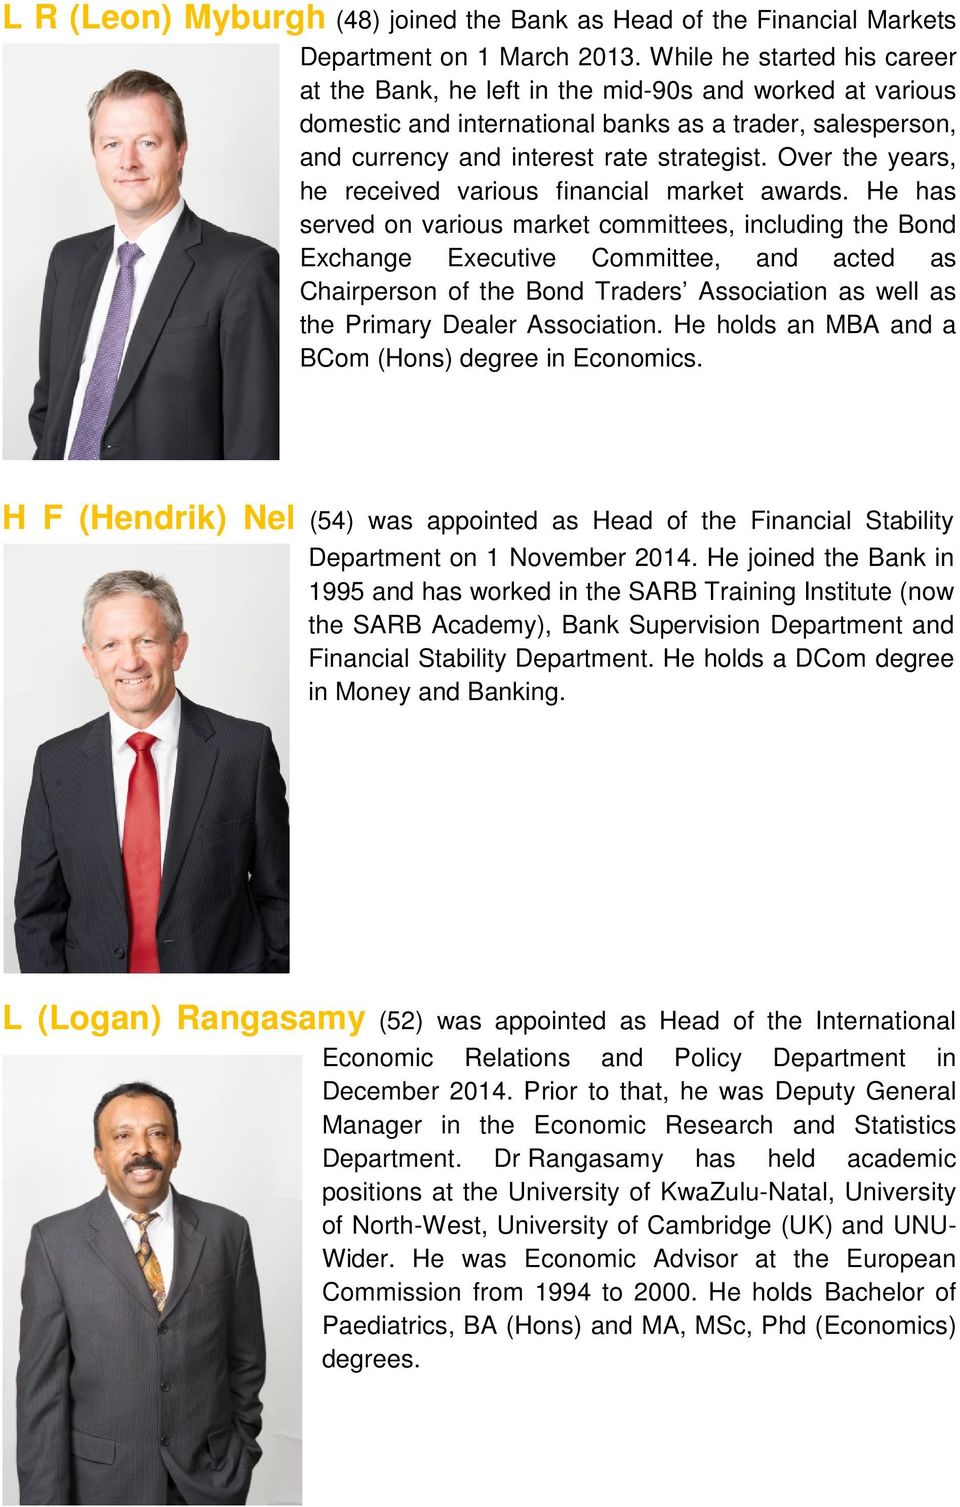 Over the years, he received various financial market awards.